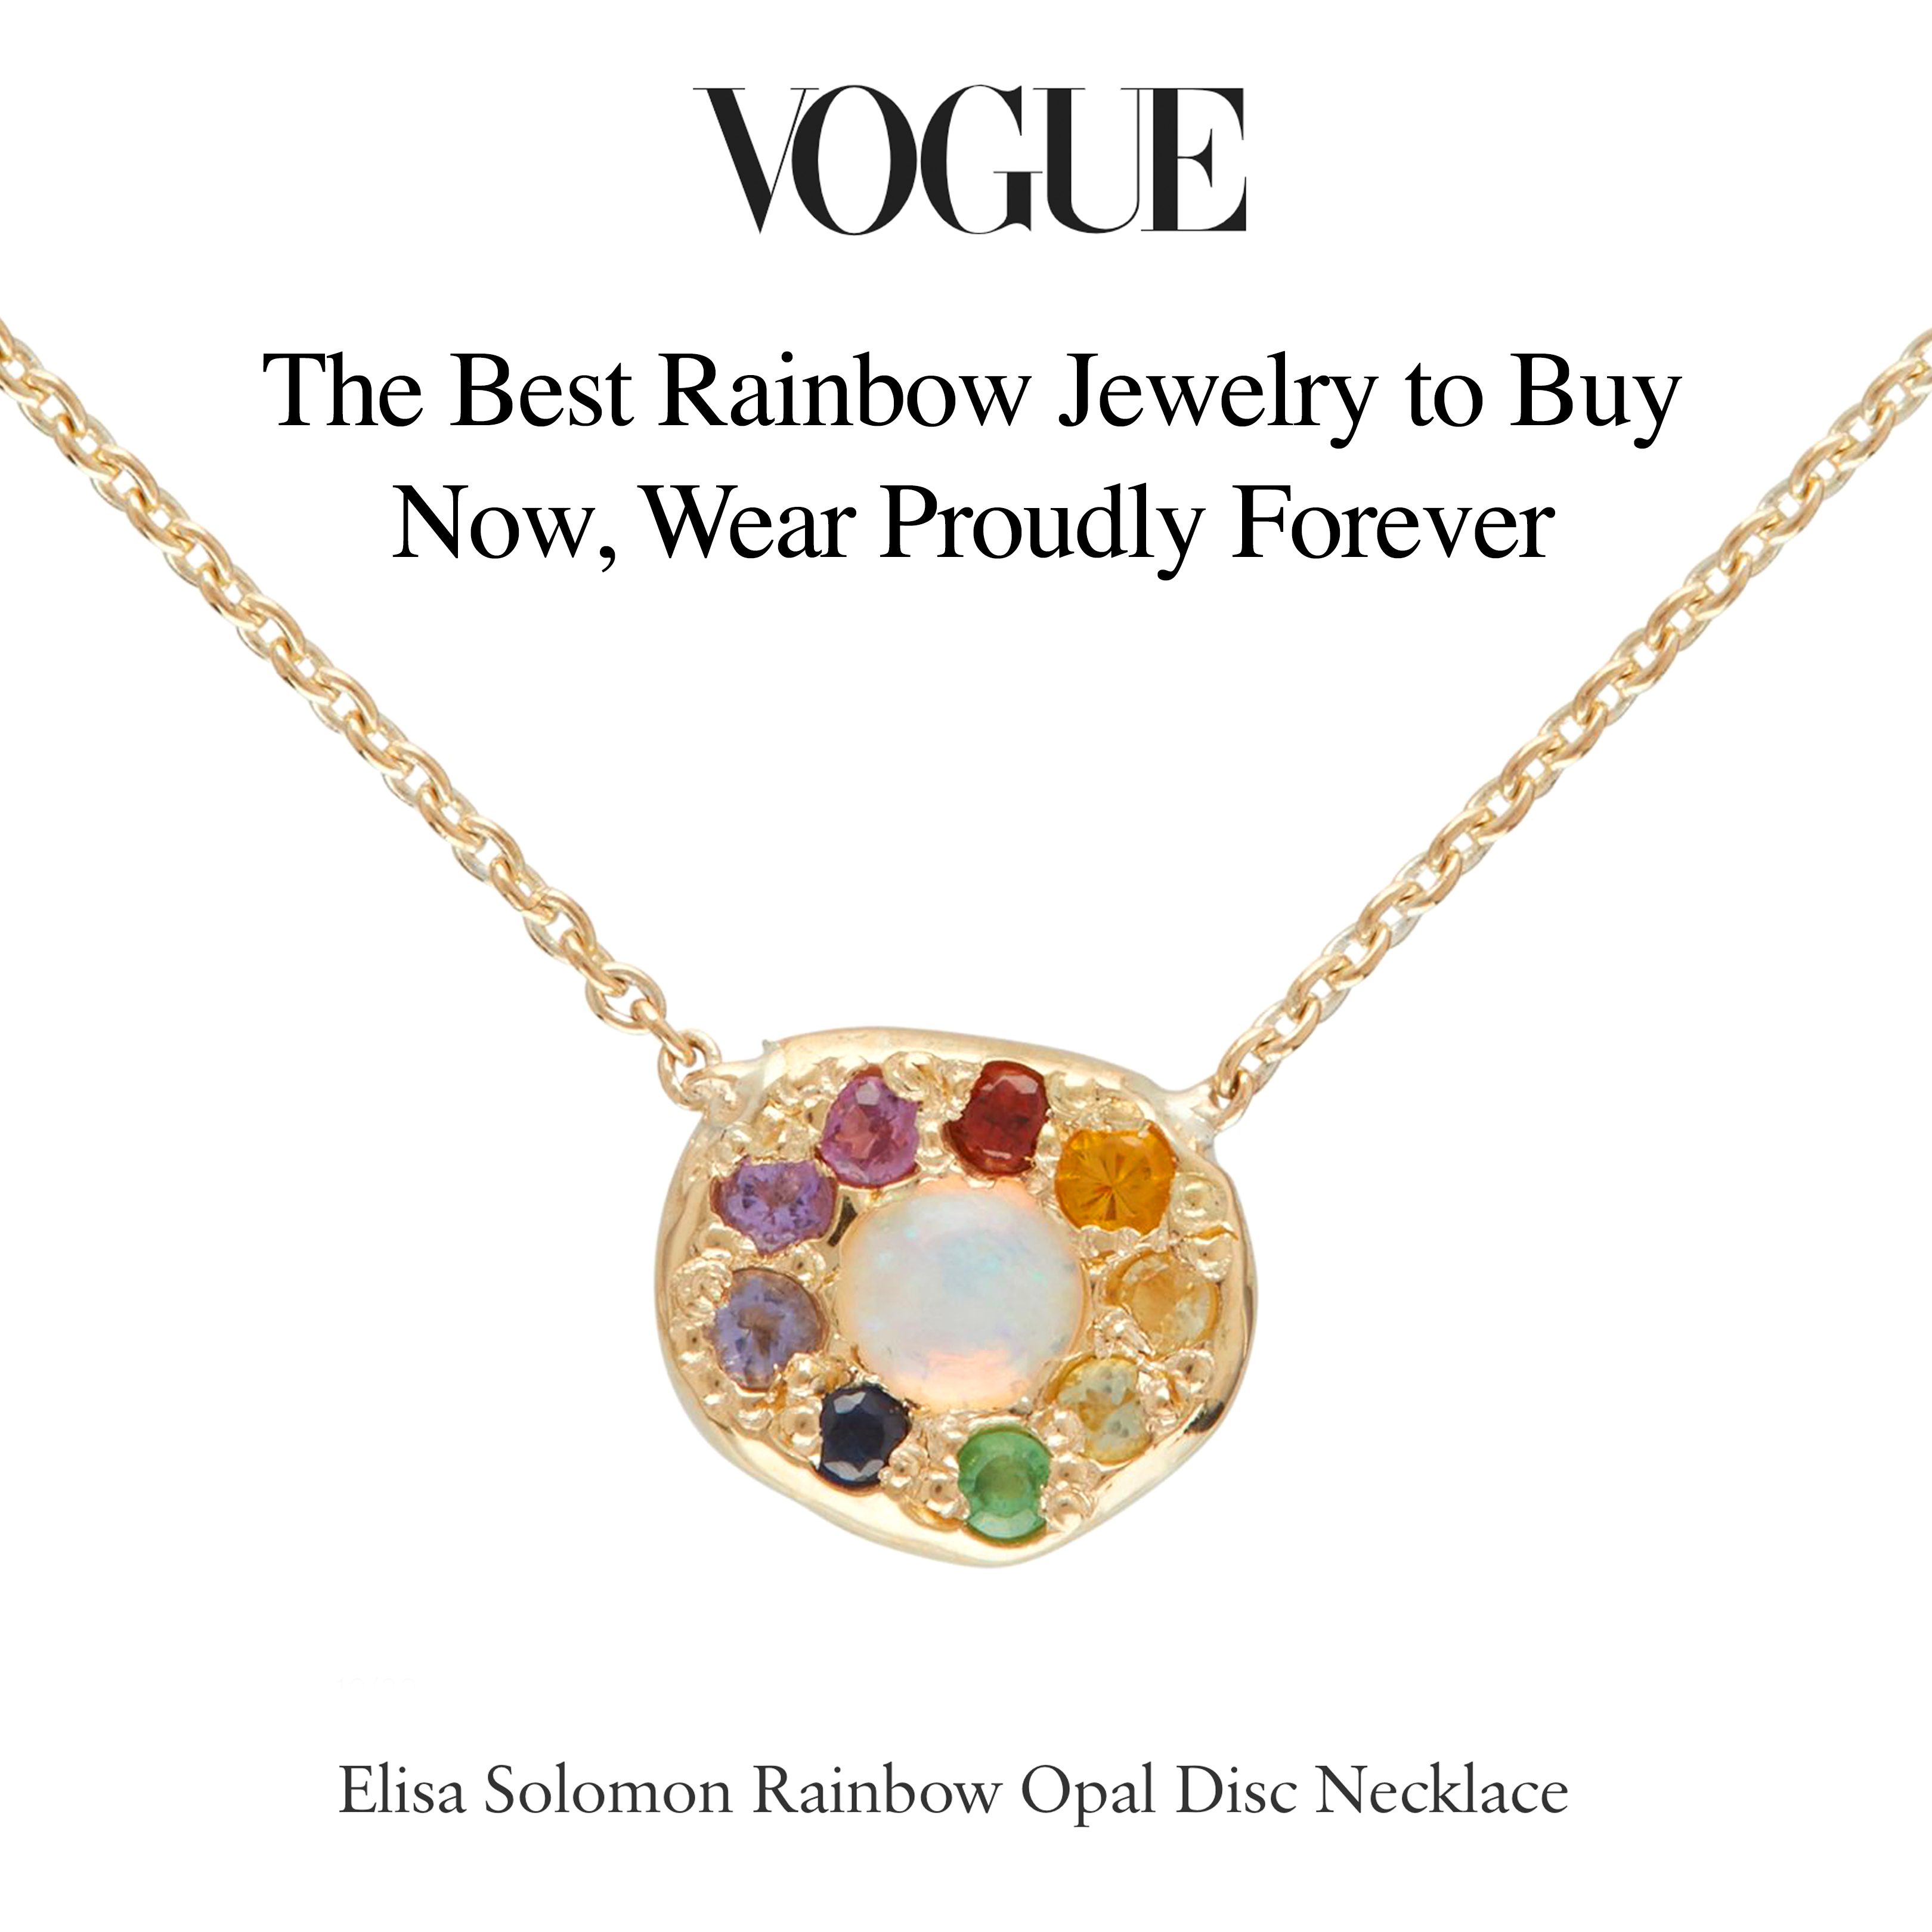 Necklace featured in Vogue June 2019